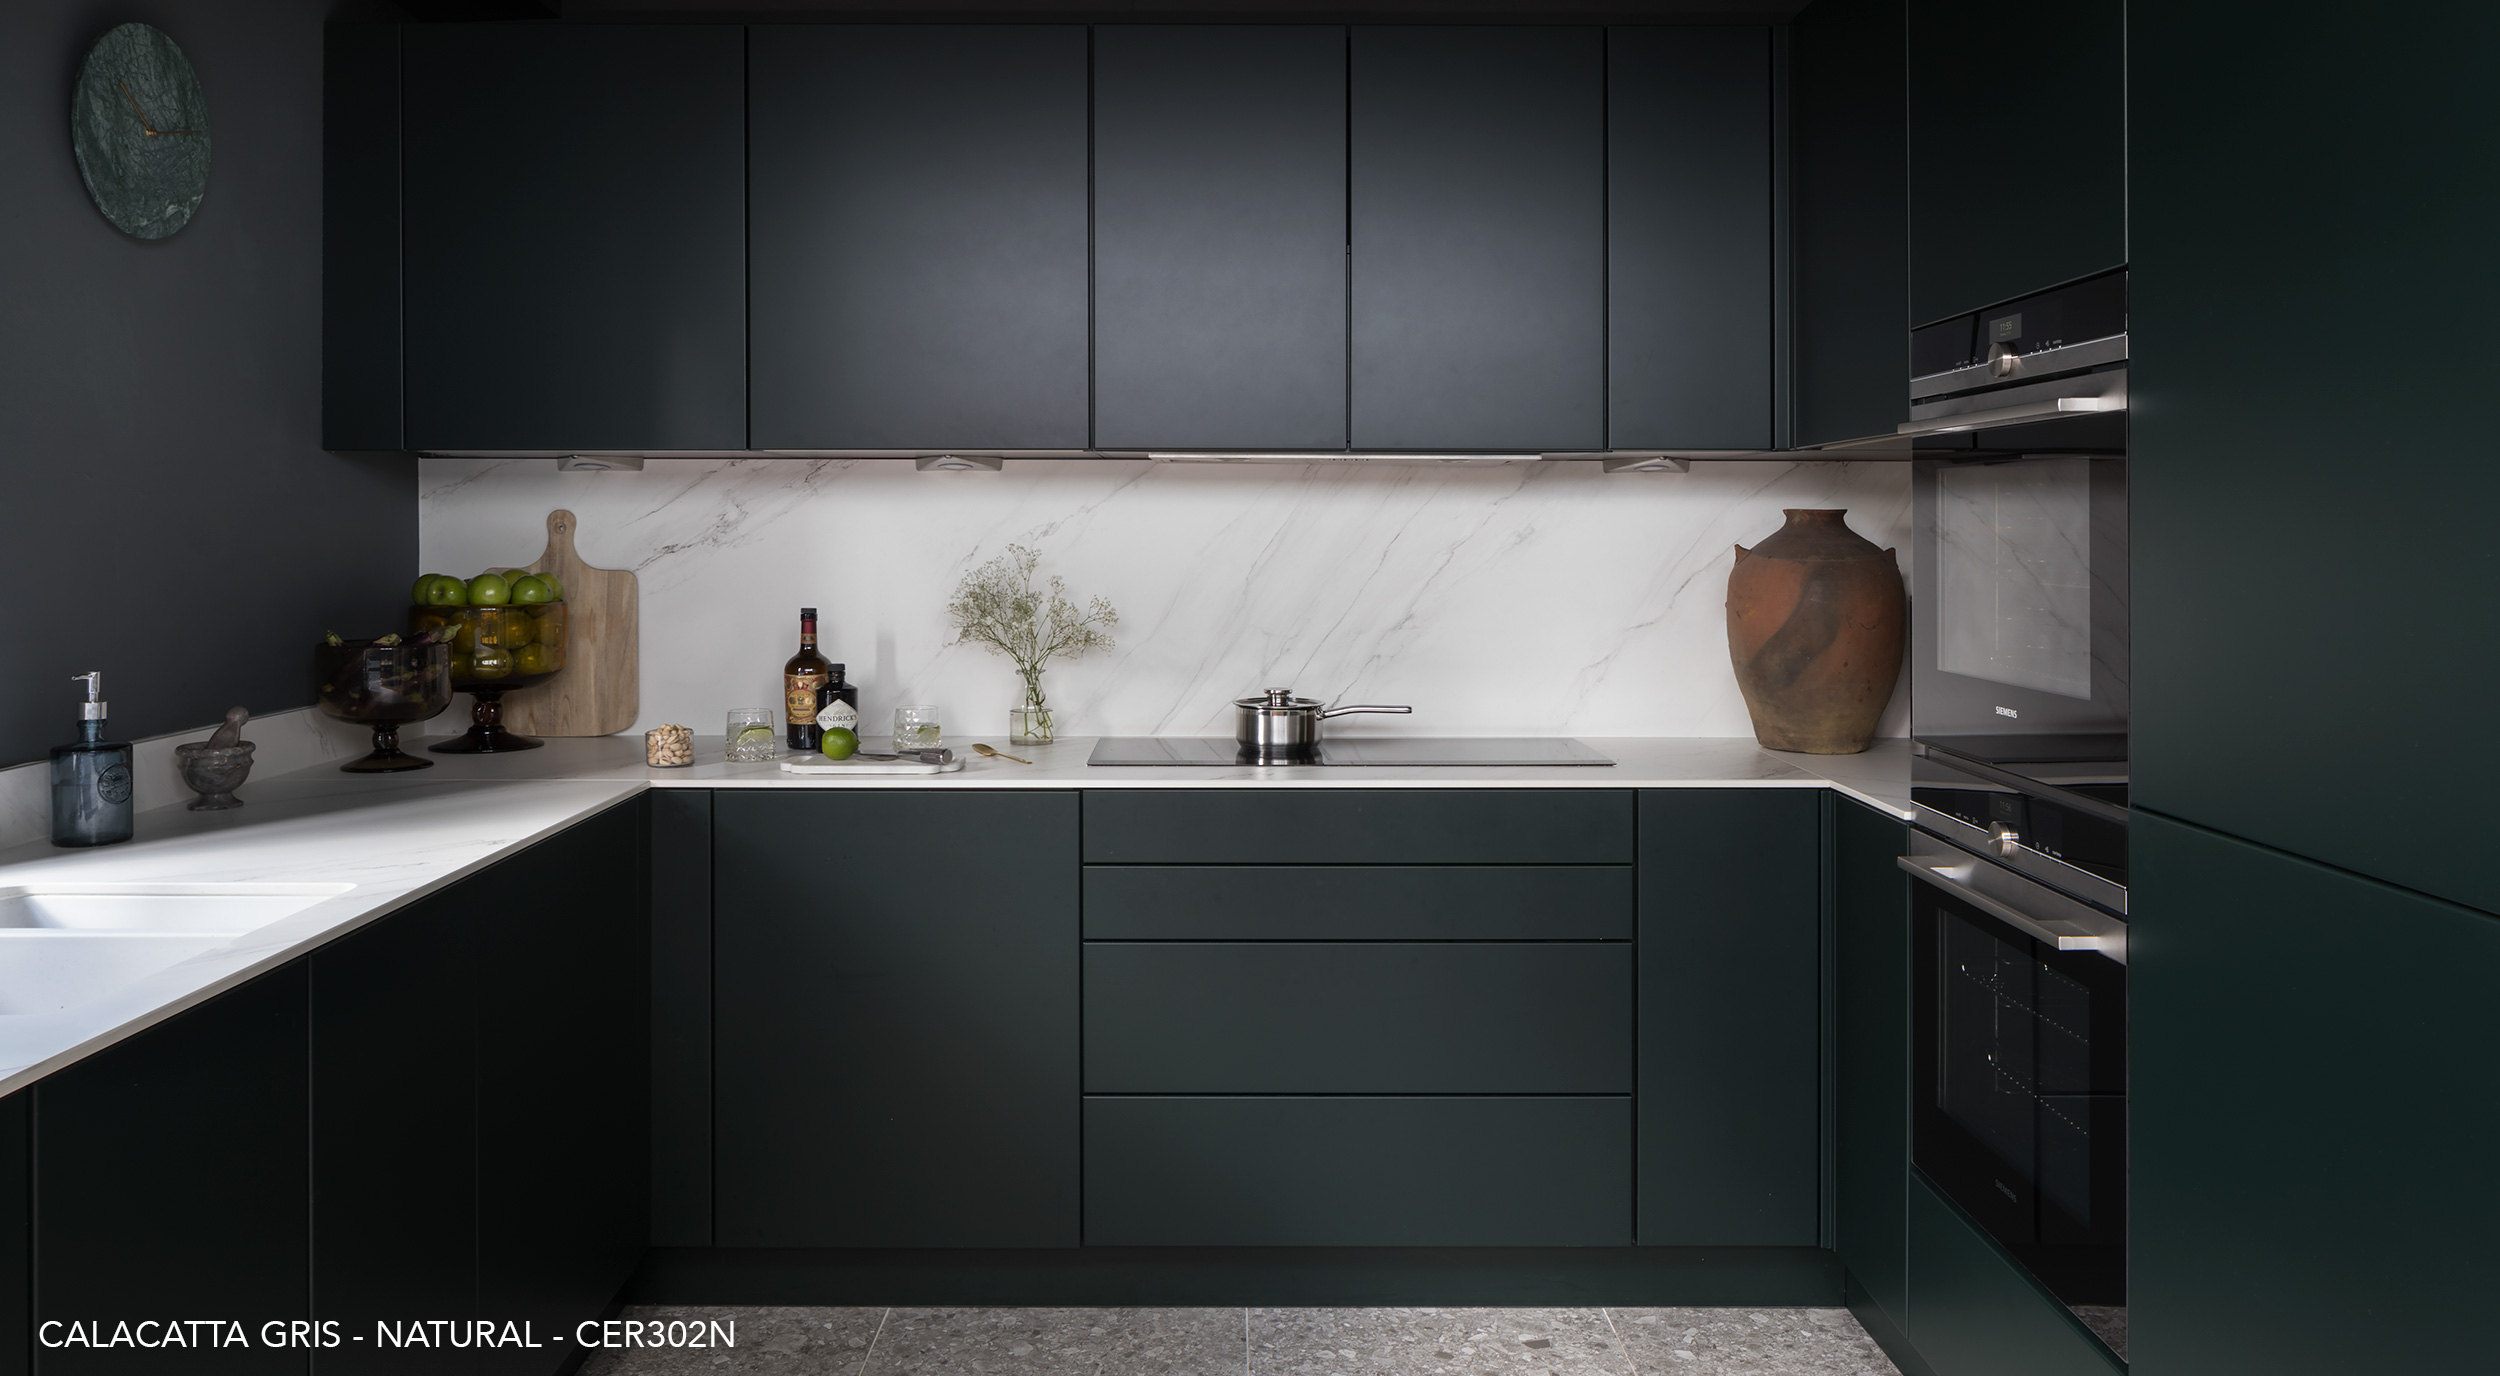 U-shaped kitchen with Ceralsio Calacatta Gris worktop and dark green cupboards